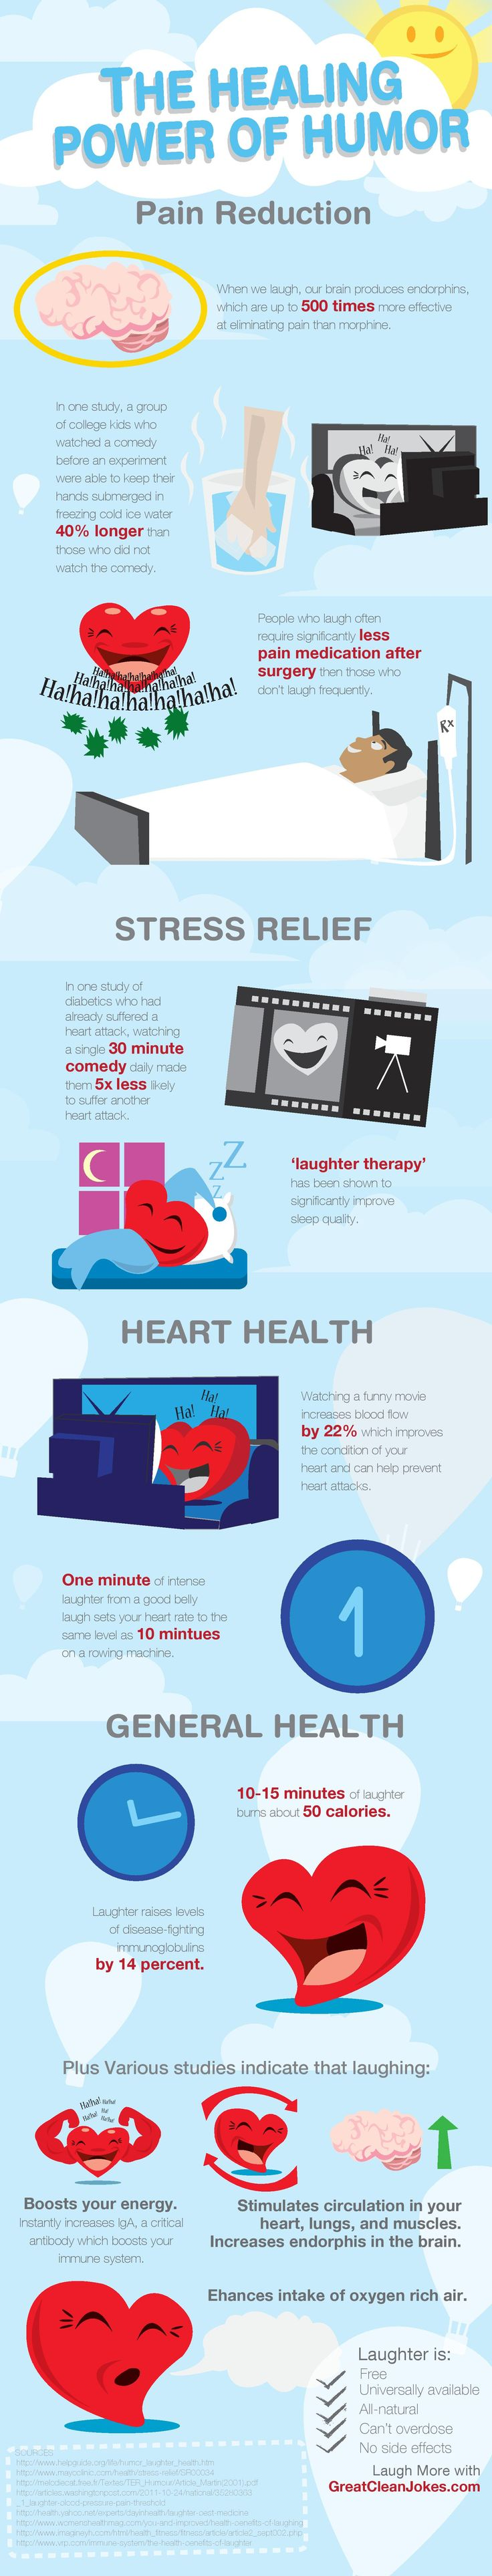 best images about good to know for health < laughter be the best medicine